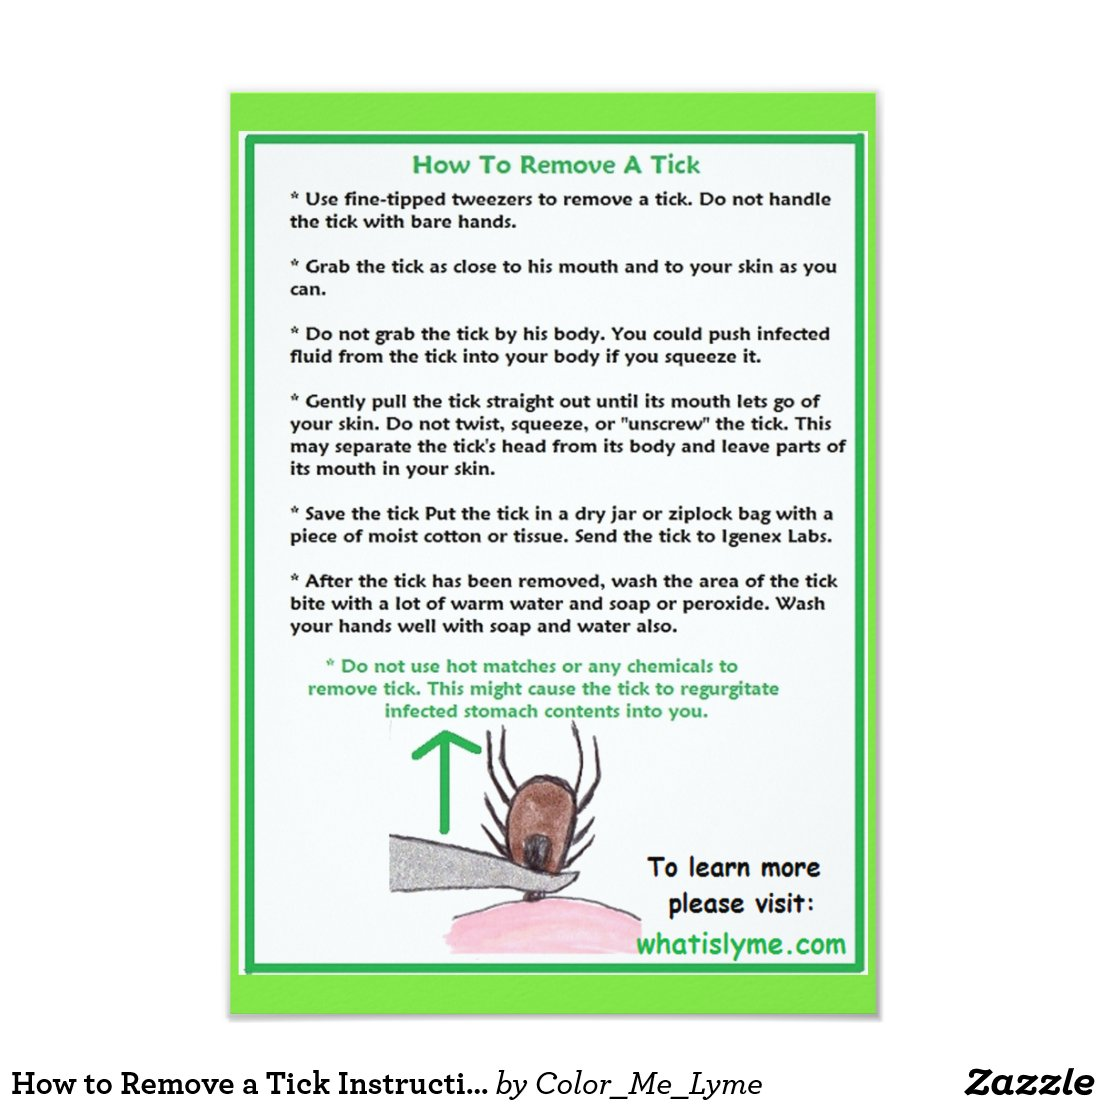 How to Remove a Tick Instructions Card for Lyme